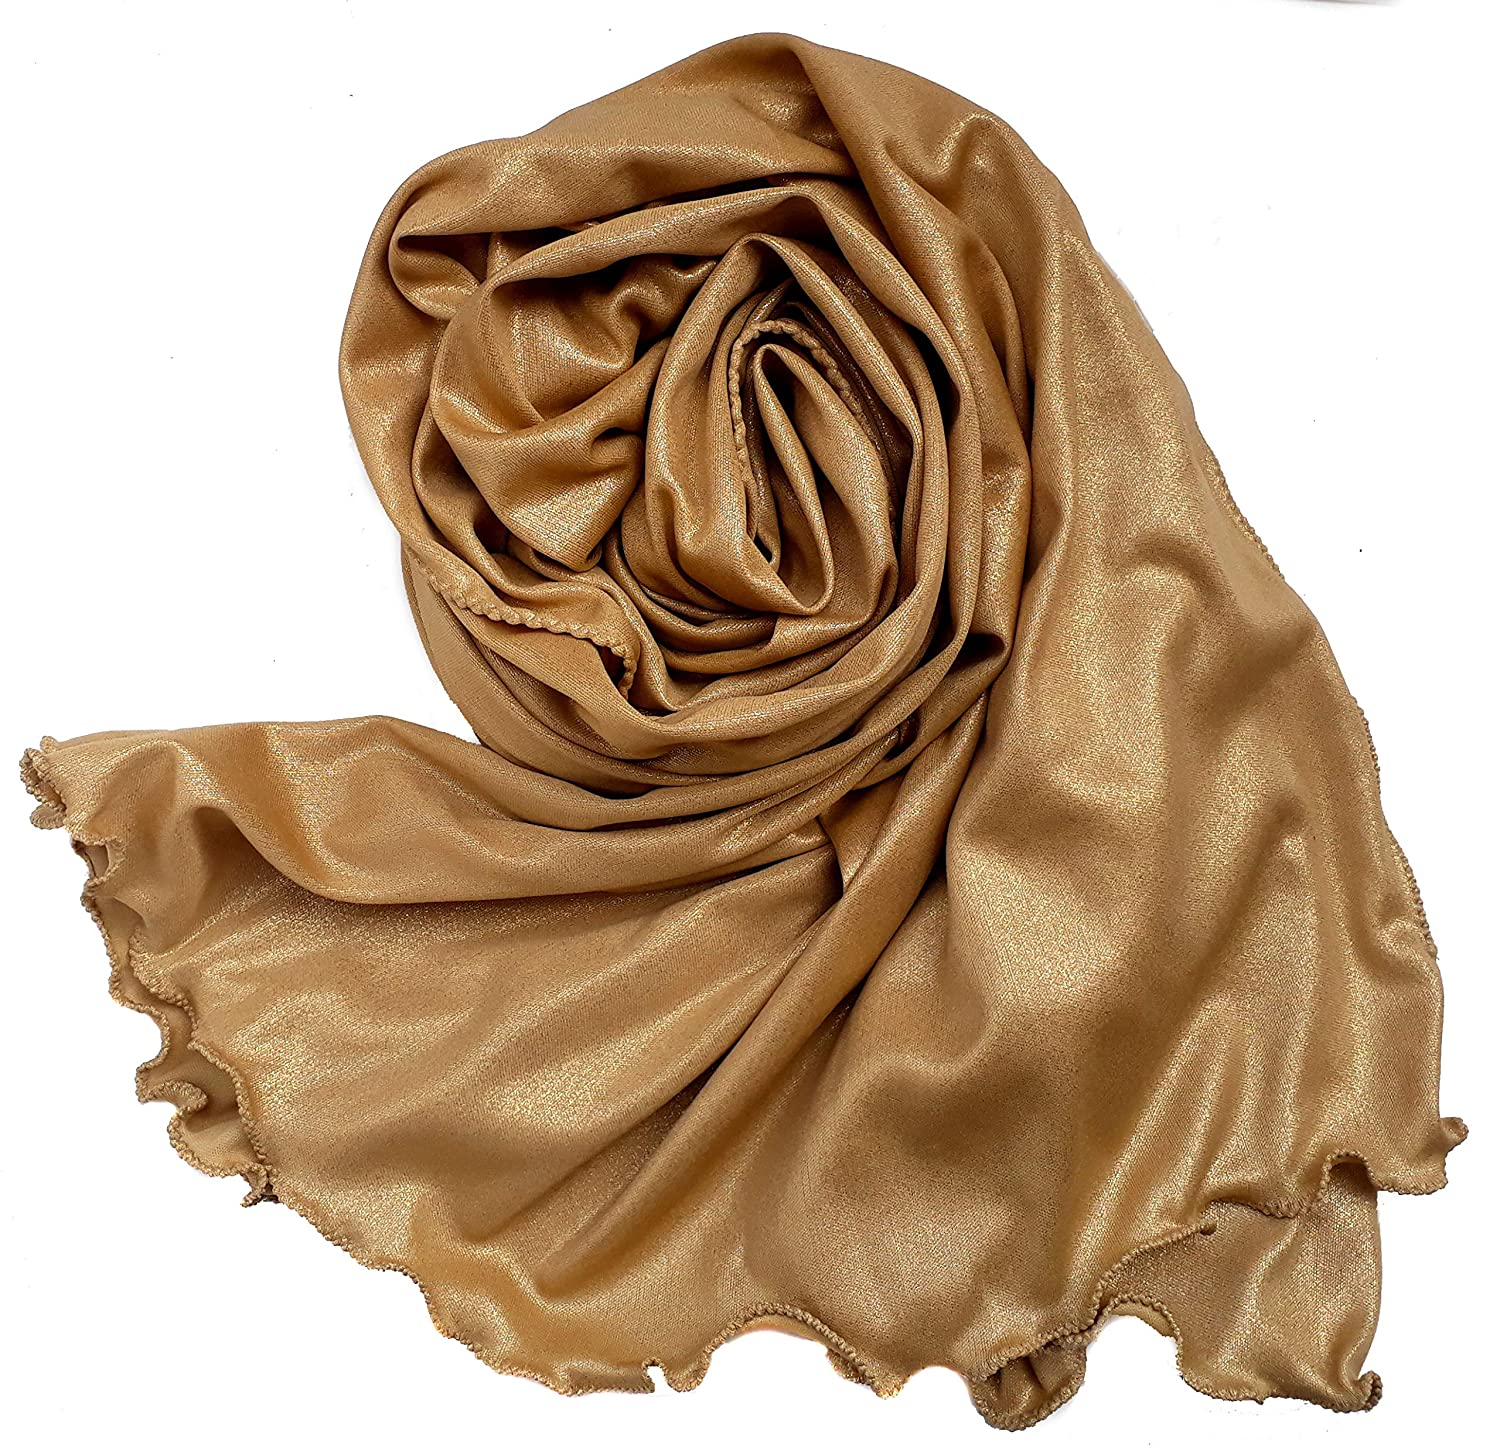 Vanilla scarf hijab scarf for women stole for girl hijab weddingGold scarf  style 2019 new year gift for sister gift women new year gift for wife